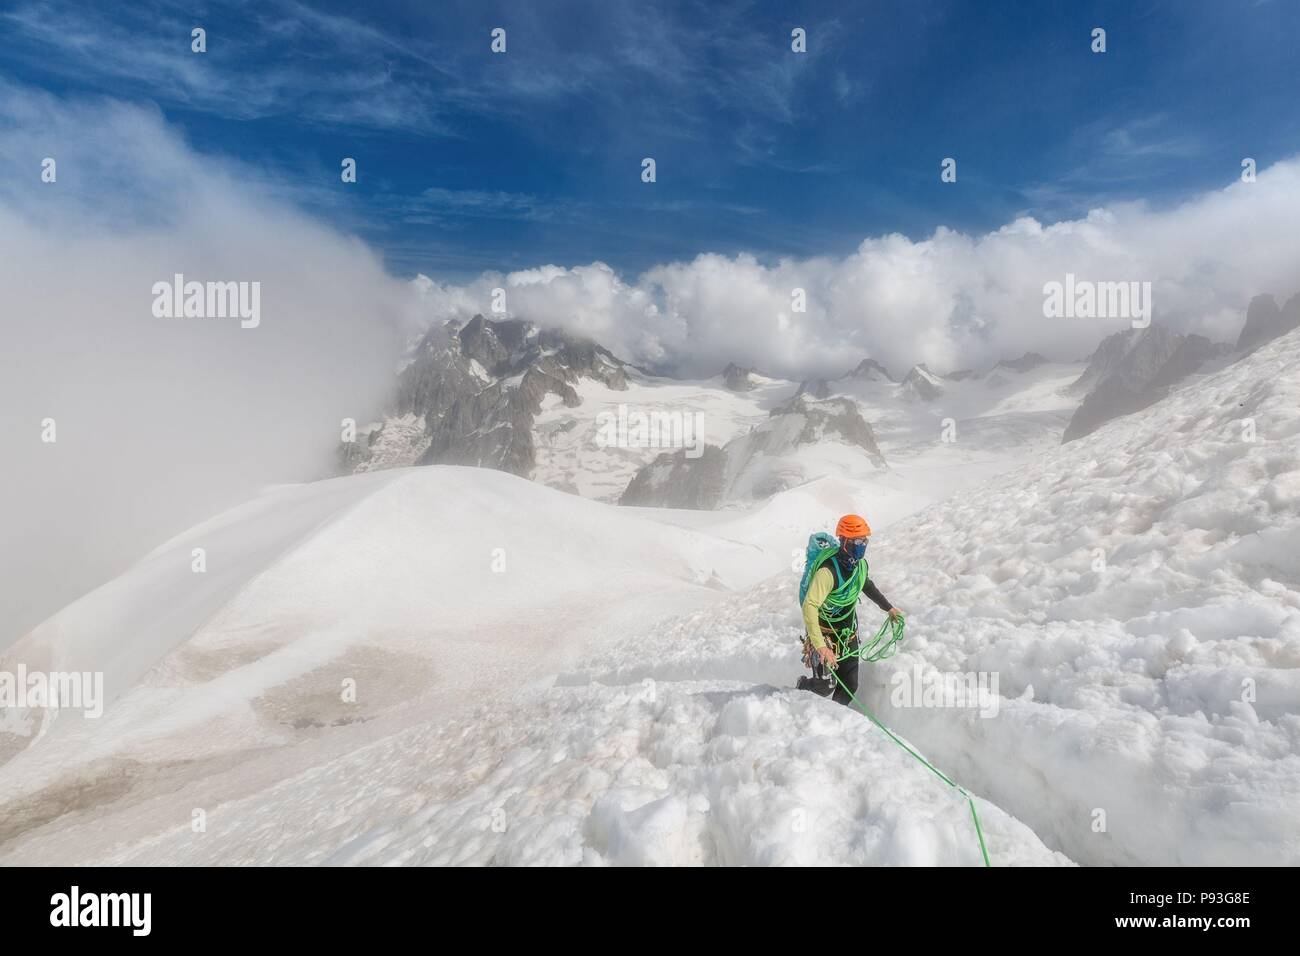 MOUNTAINEERING IN THE HAUTE-SAVOIE (74), AUVERGNE RHONE ALPES, FRANCE Stock Photo